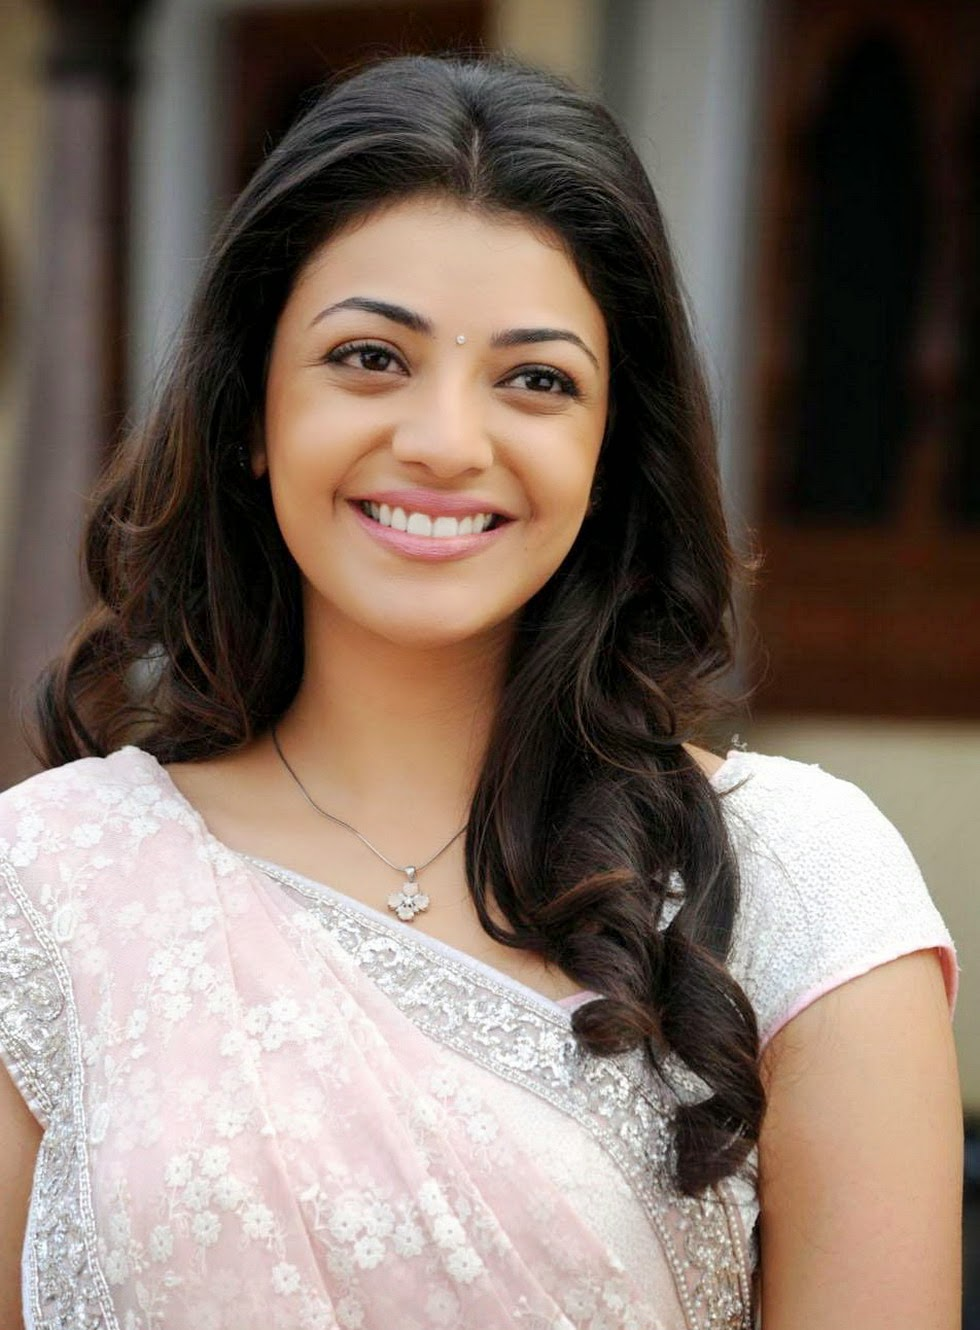 paulbarford heritage the ruth: kajal agarwal wallpapers free download